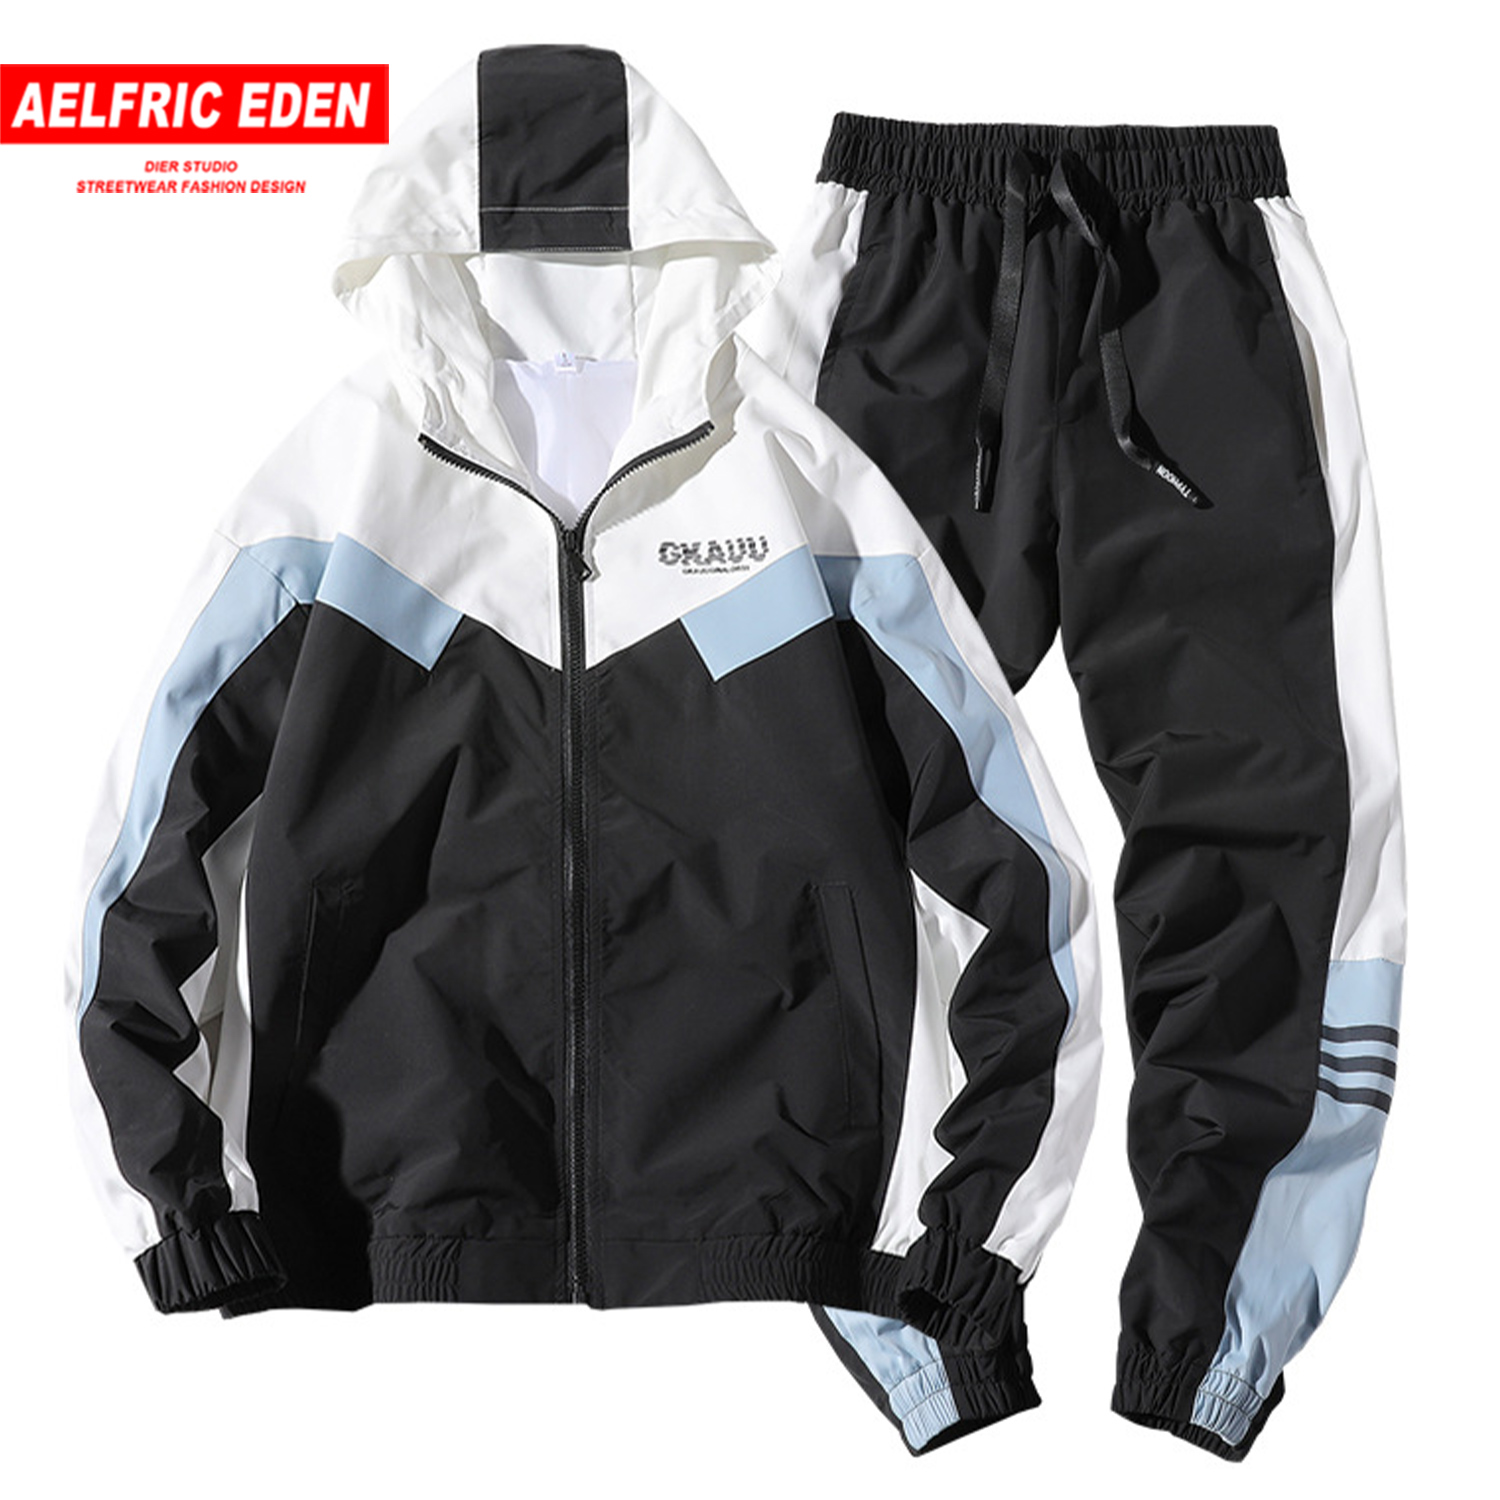 Aelfric Eden Modern Sports Casual Men's Sets 2020 Spring Hip Hop Patchwork Color Block Sportswear Fashion Streetwear  Two-pieces